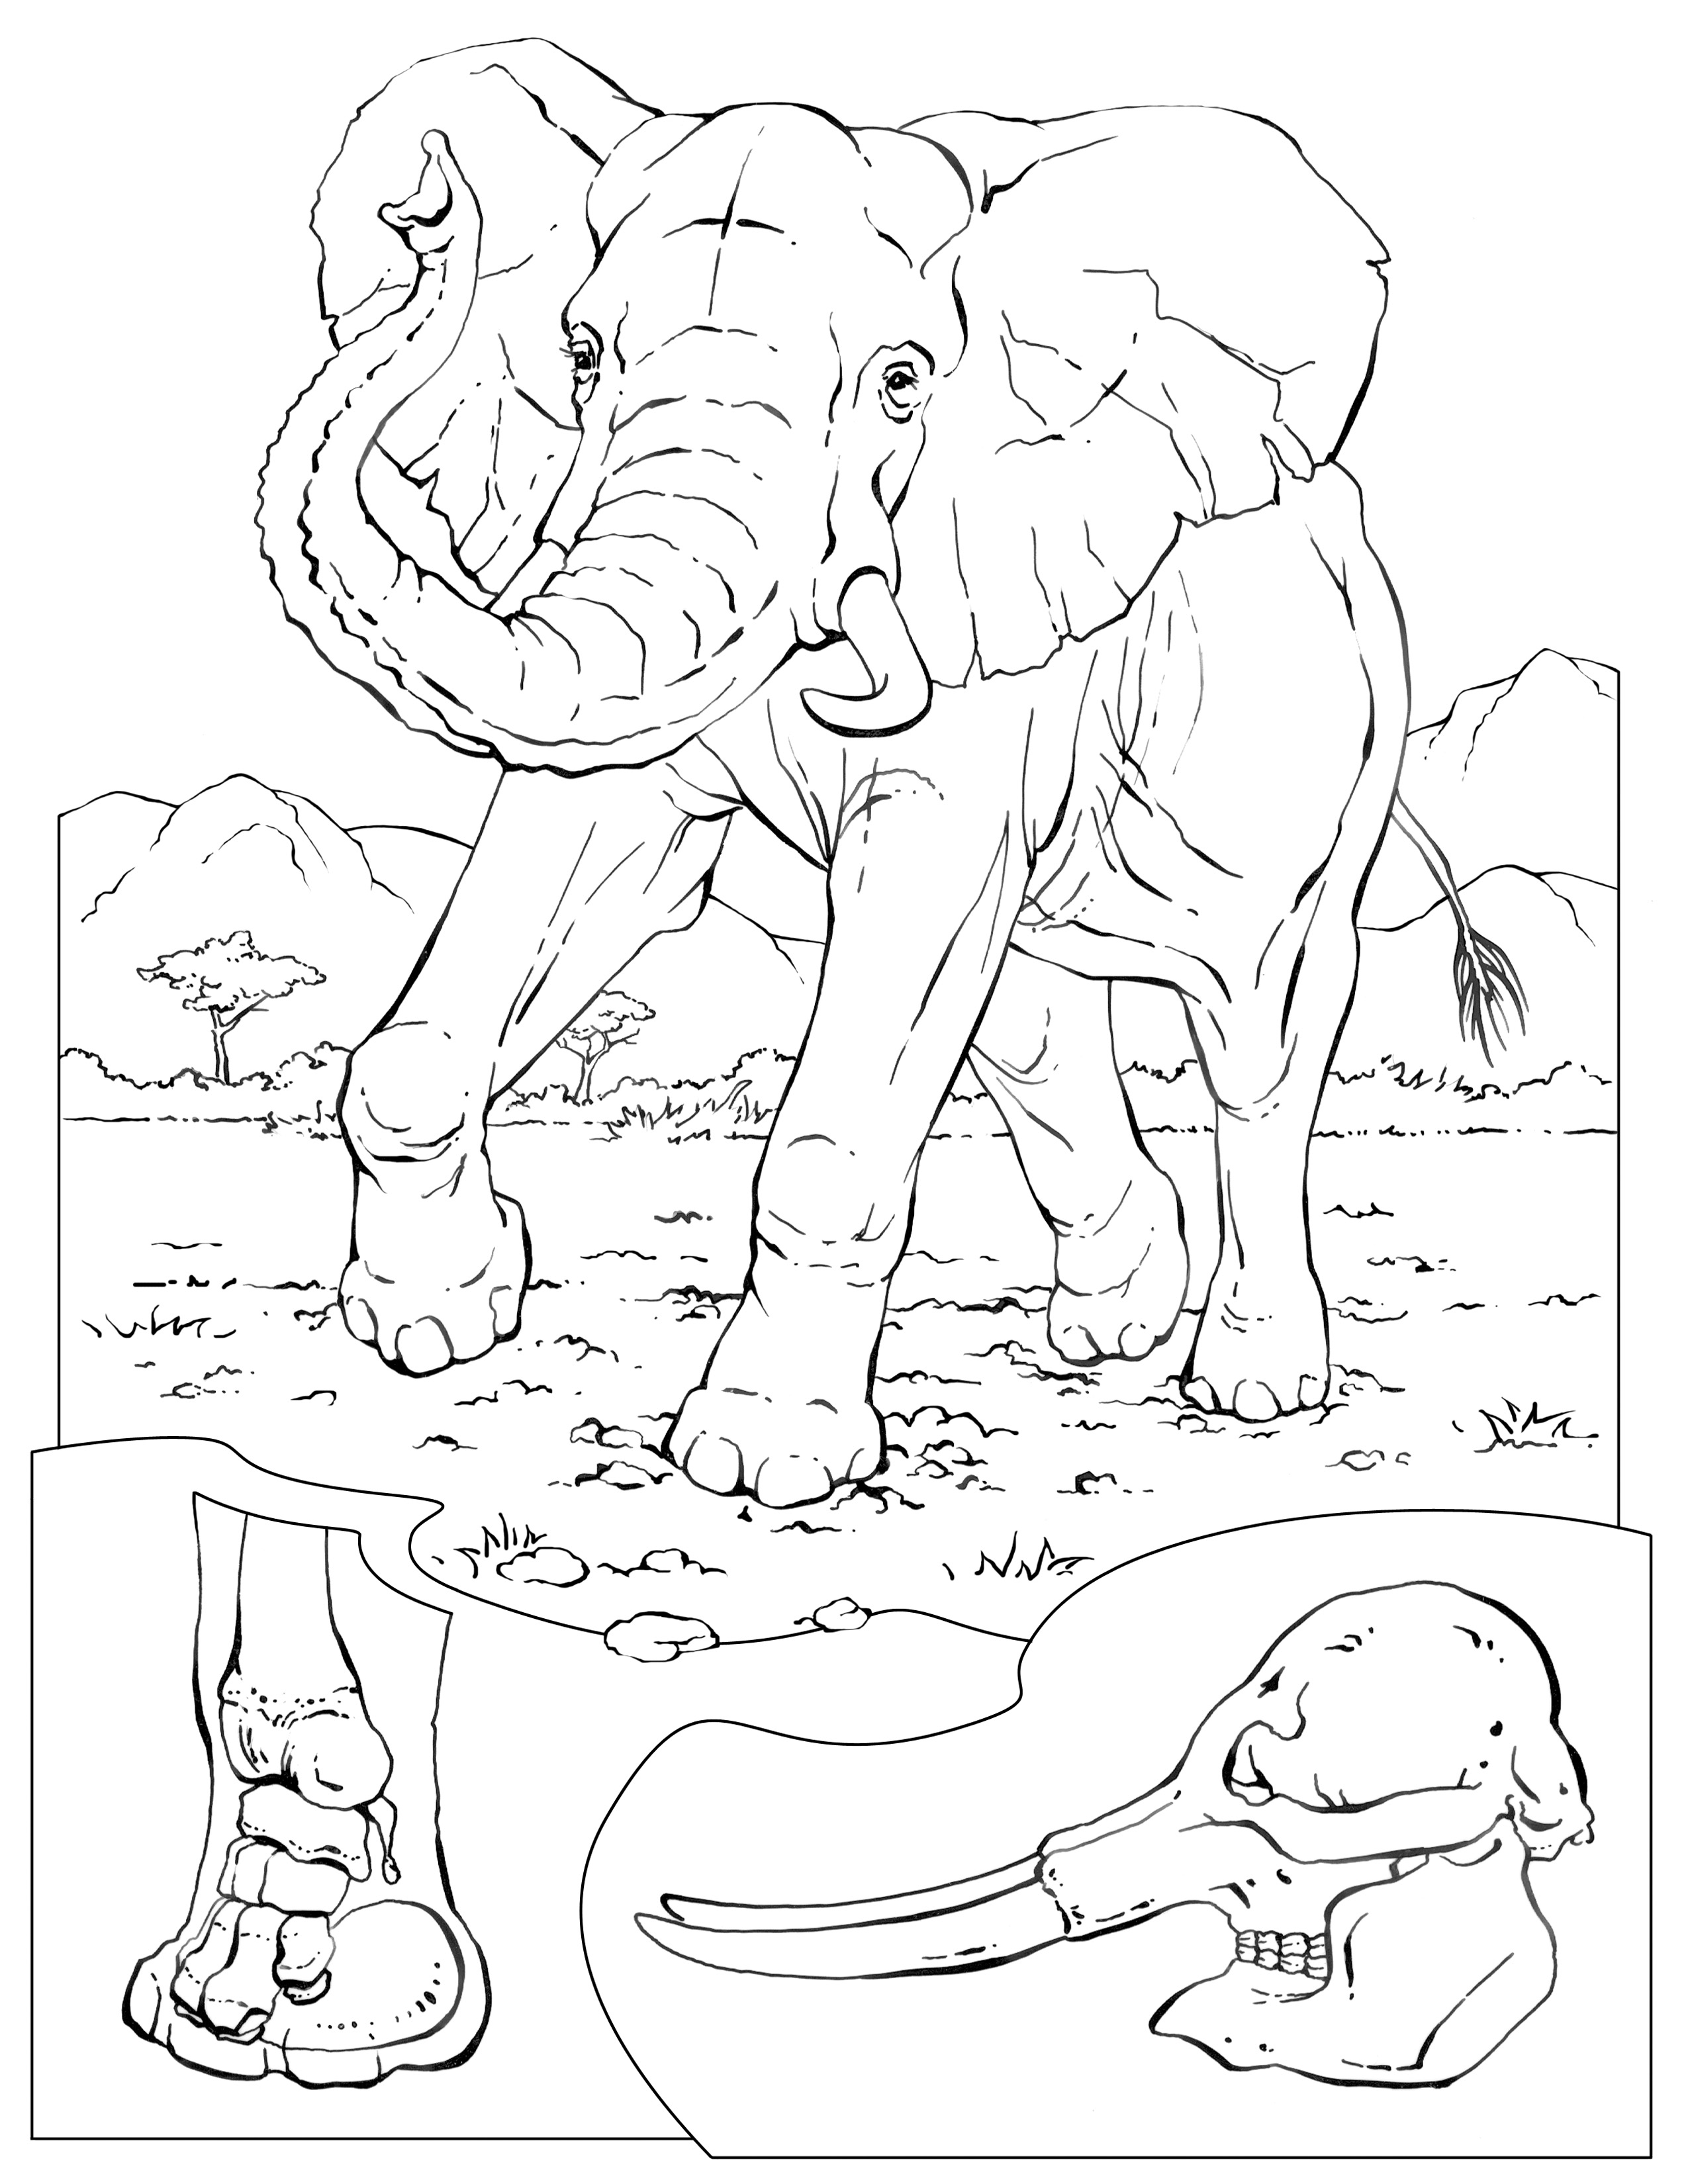 elephant coloring coloring book for children elephants stock illustration elephant coloring